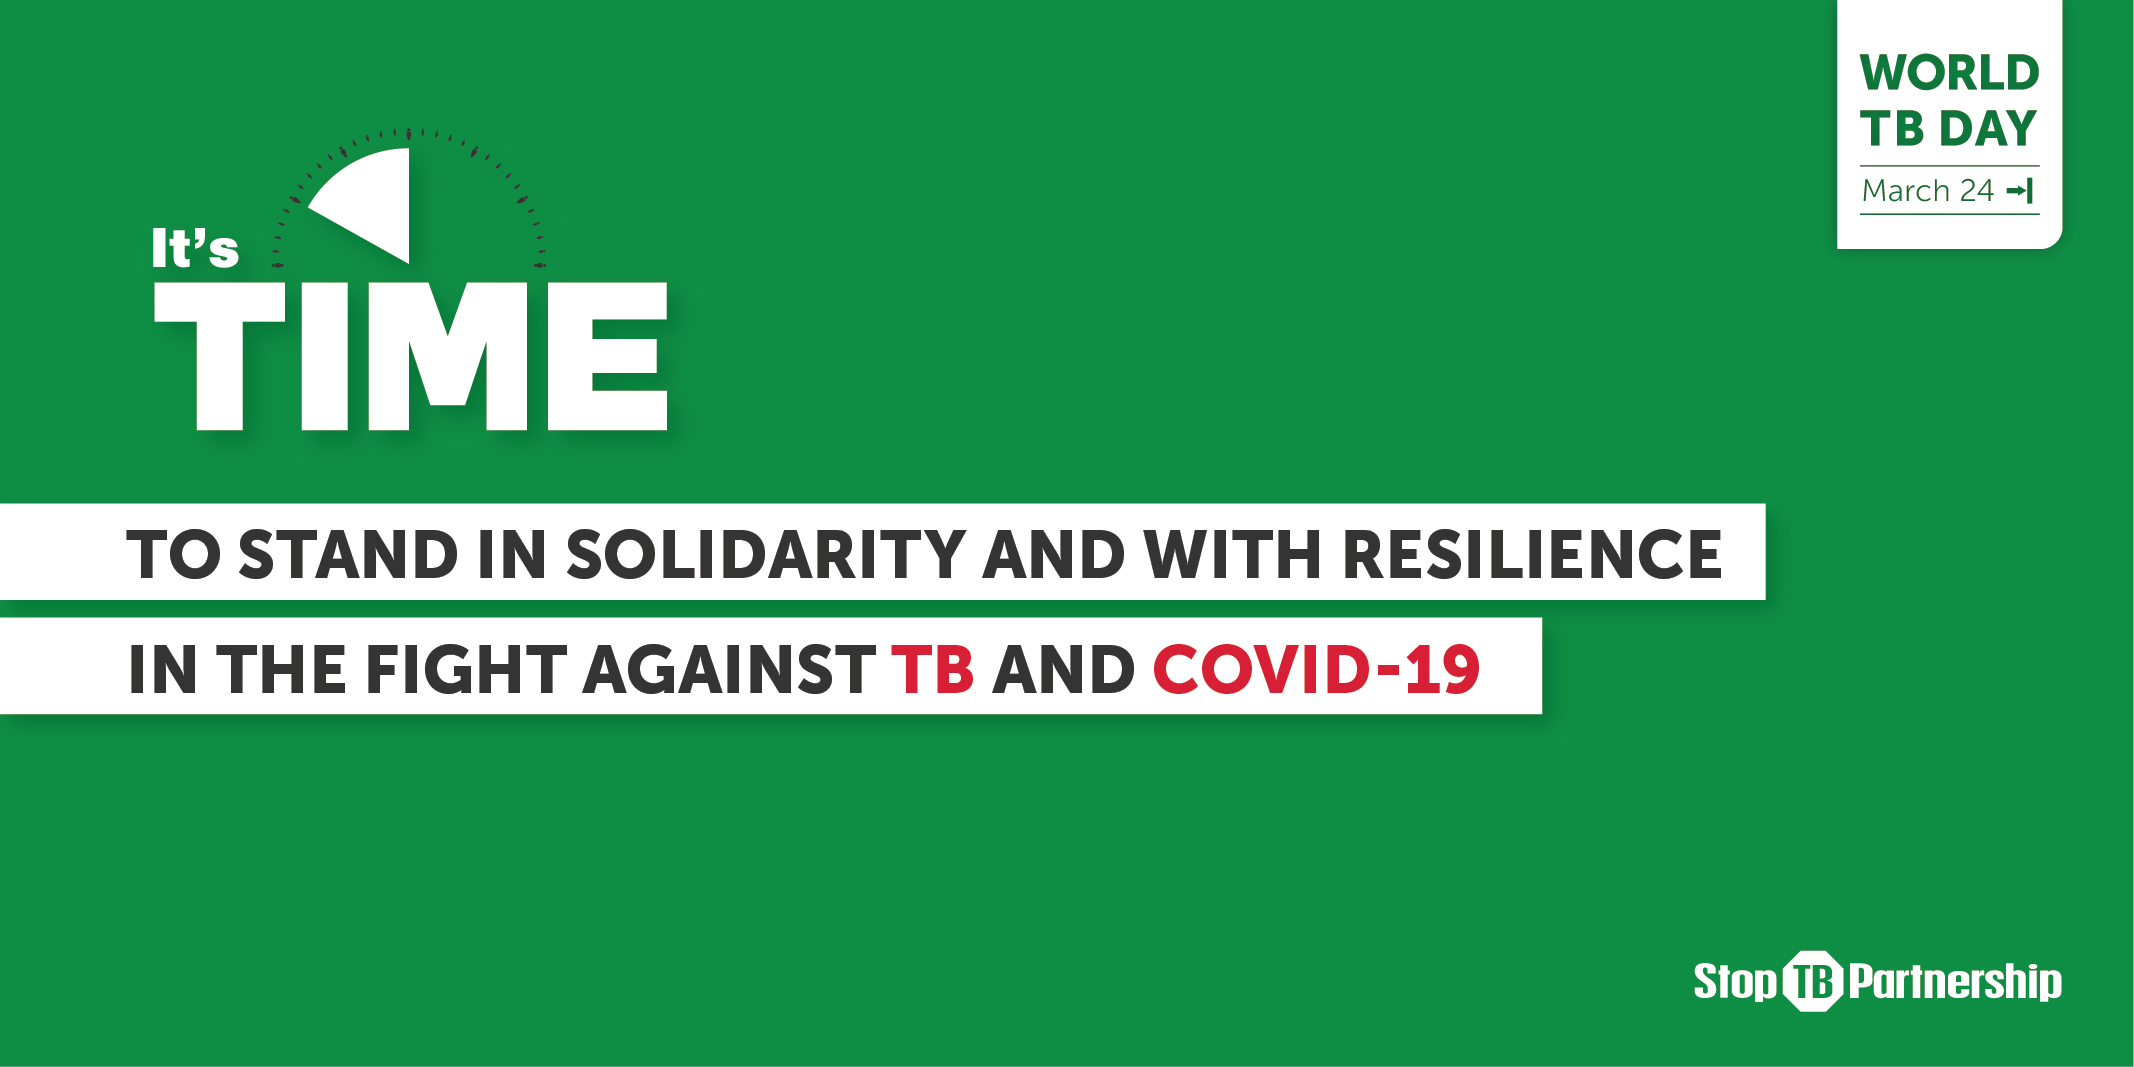 World TB Day: United in the fight against COVID-19 and TB